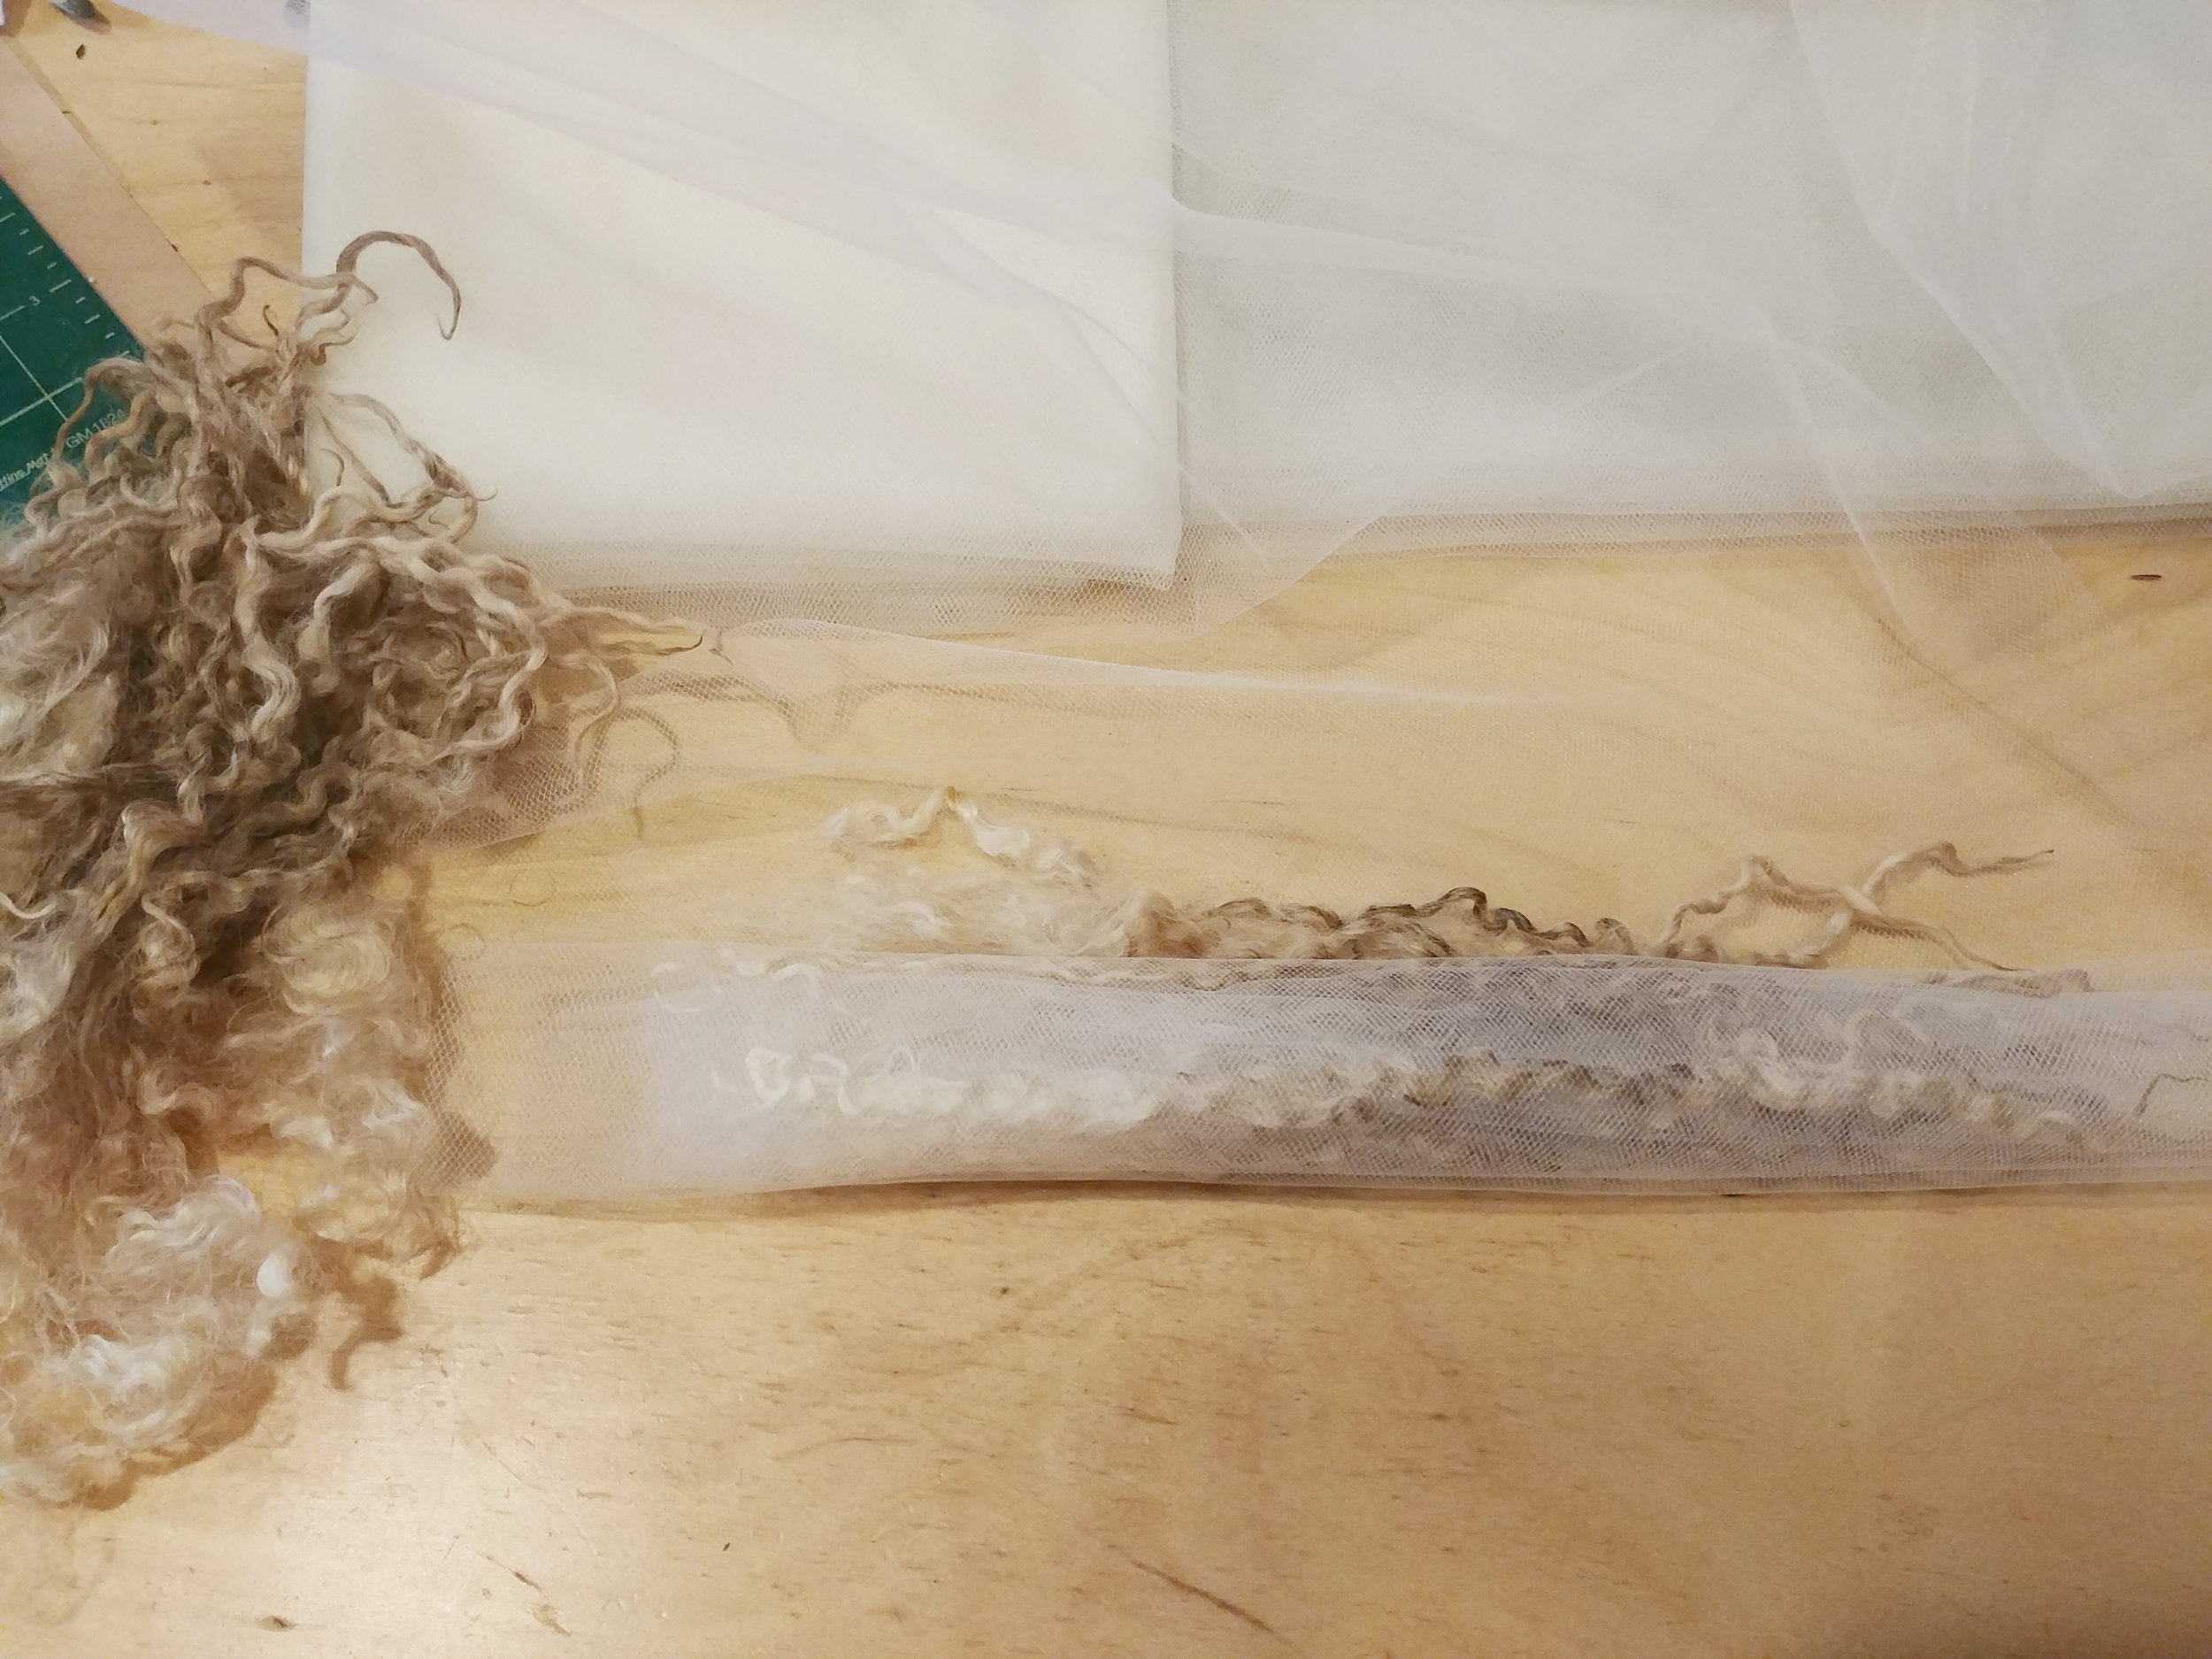 Process of rolling teeswater locks in a long sheet of tulle into bundles, one lock after the next with an inch or two of space between locks.